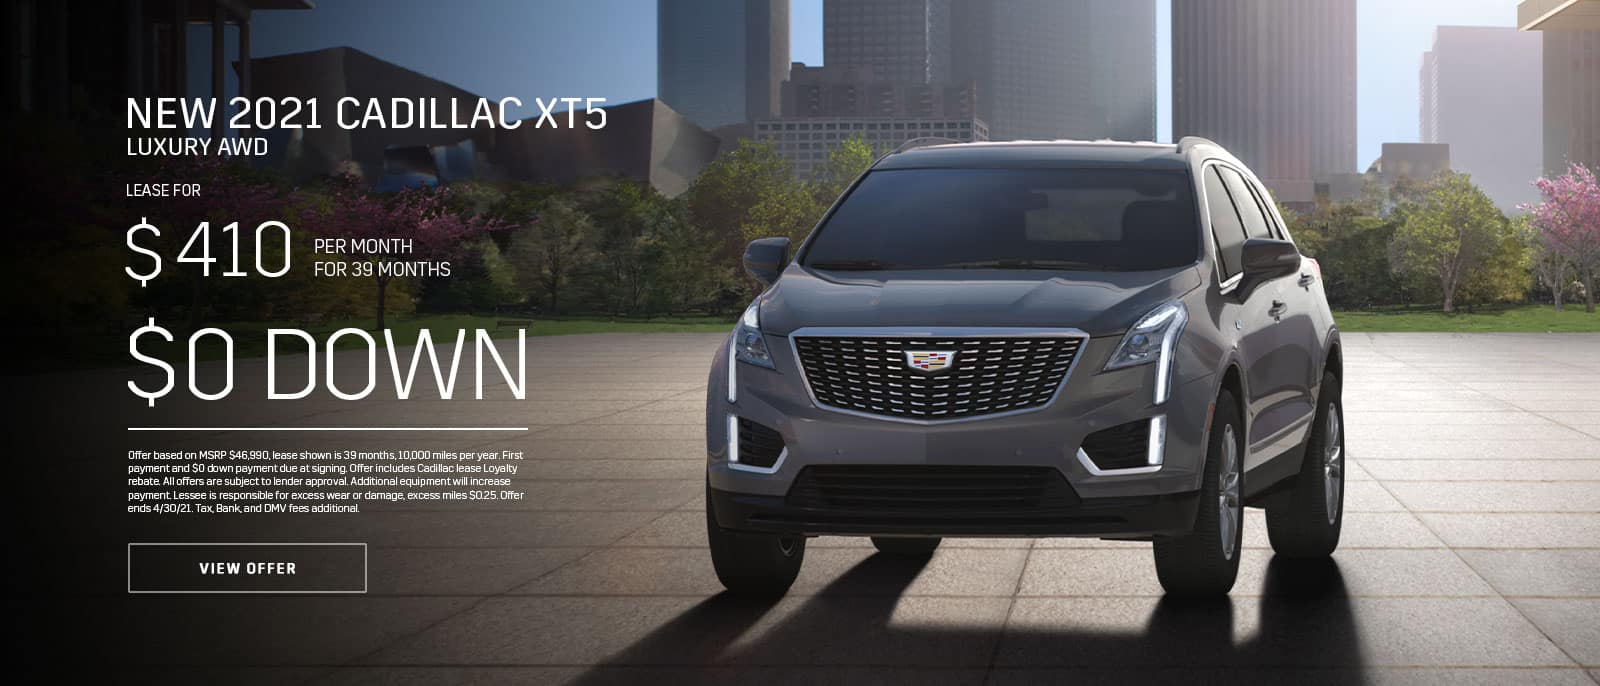 New 2021 Cadillac XT5 Lux AWD Subtext: $410/month for 39 months, $0 DOWN